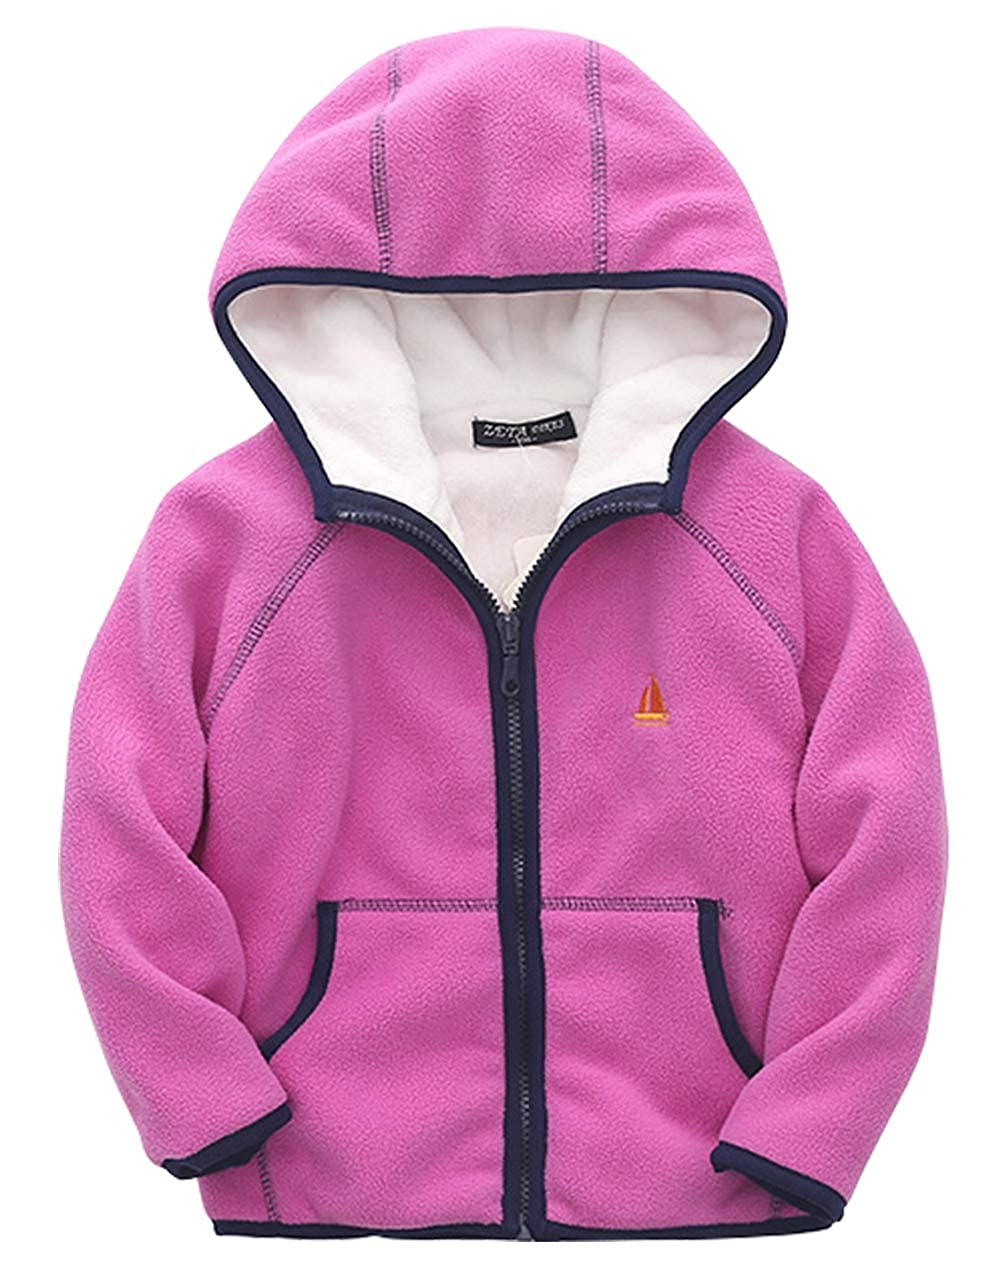 ZETA DIKES Kids Polar Fleece Jacket Hooded Long Sleeve Coat Zip up Outerwear 3-8T